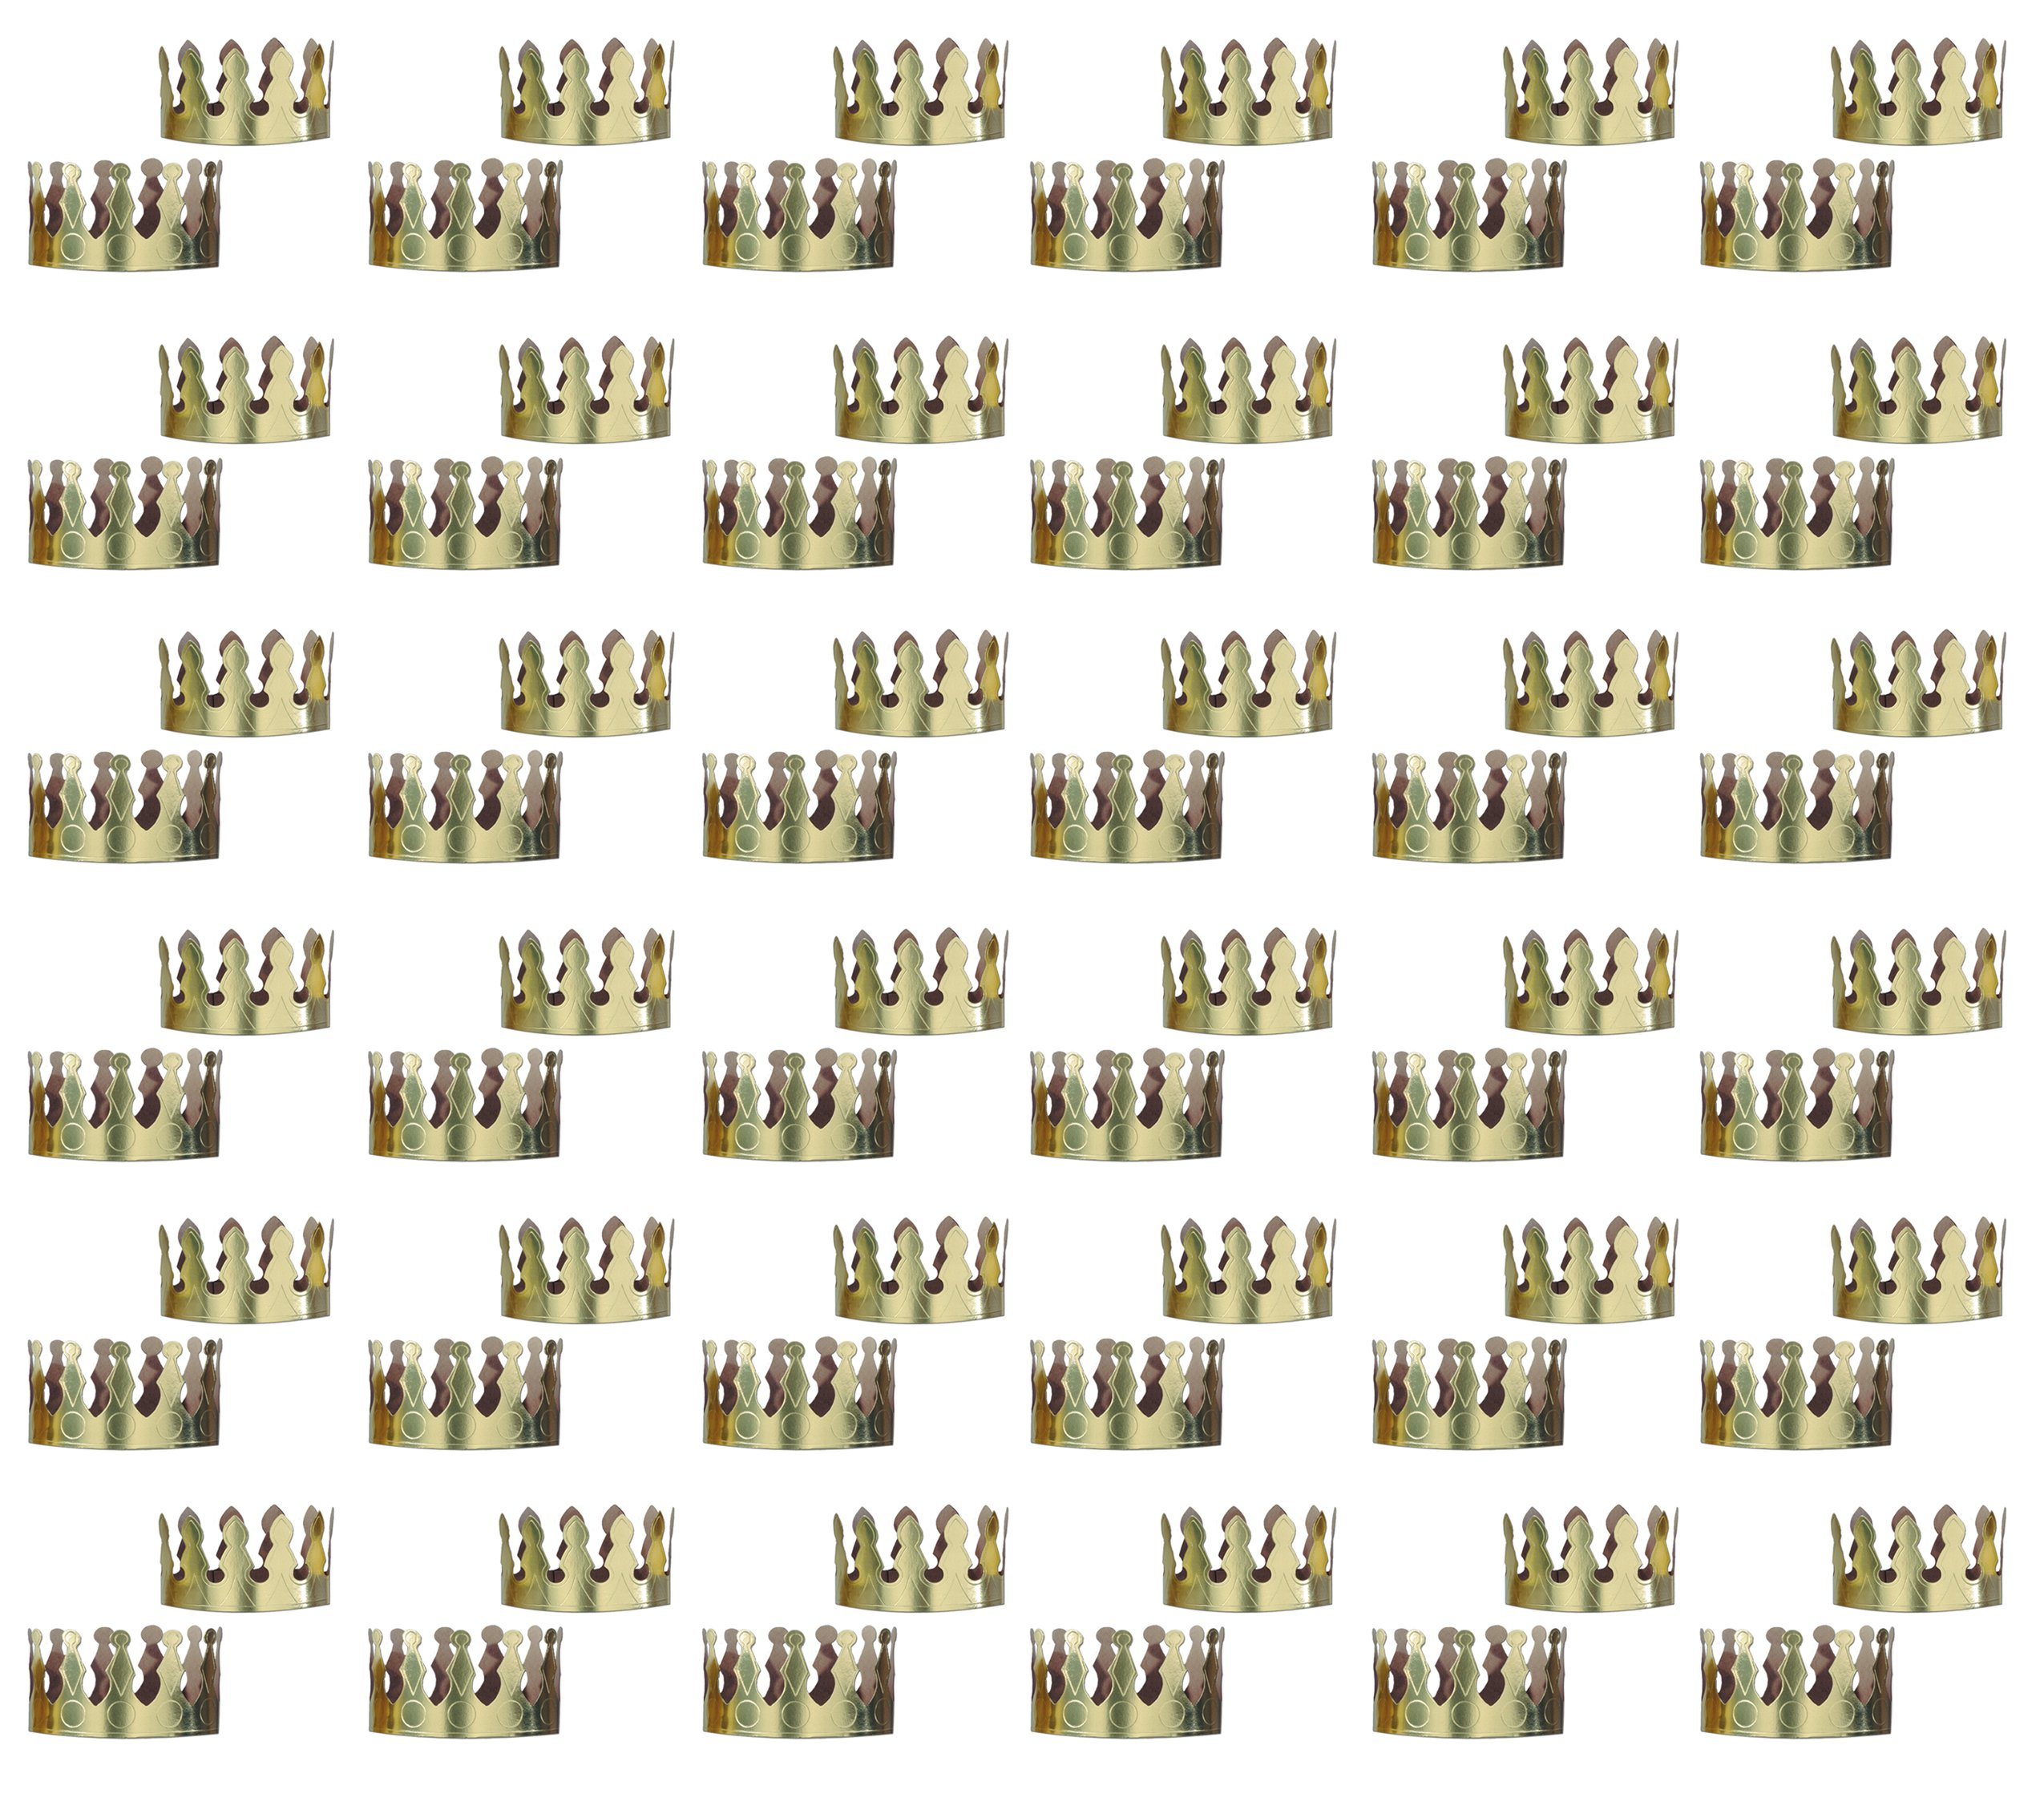 Beistle 66049 72-Pack Gold Foil Crowns, 4-Inch